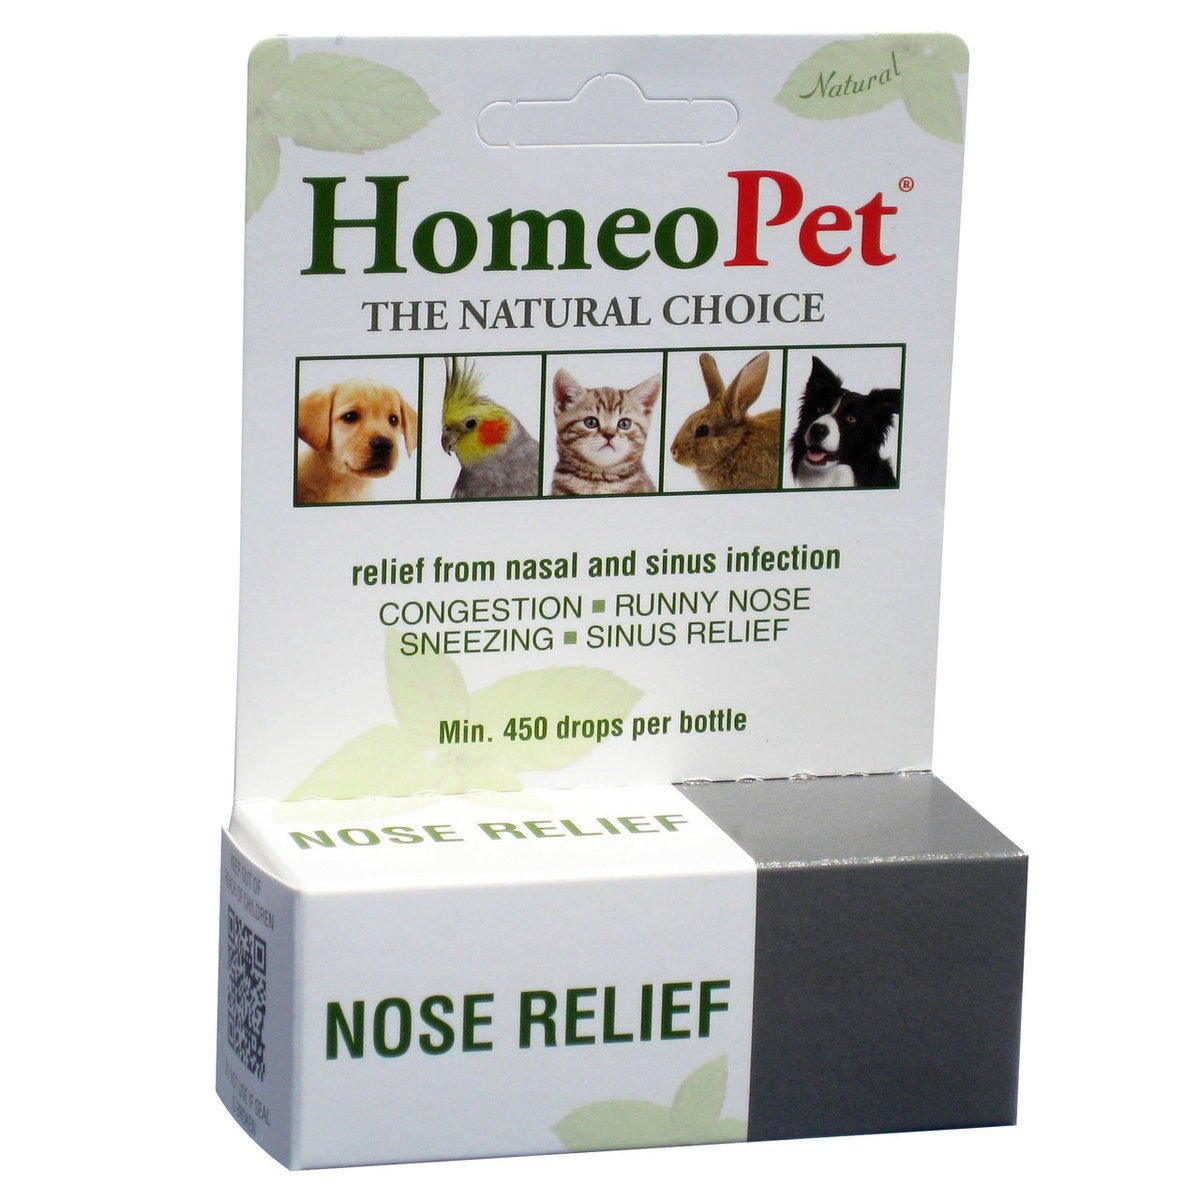 HomeoPet Nose Relief Nasal & Sinus Infection 15ml